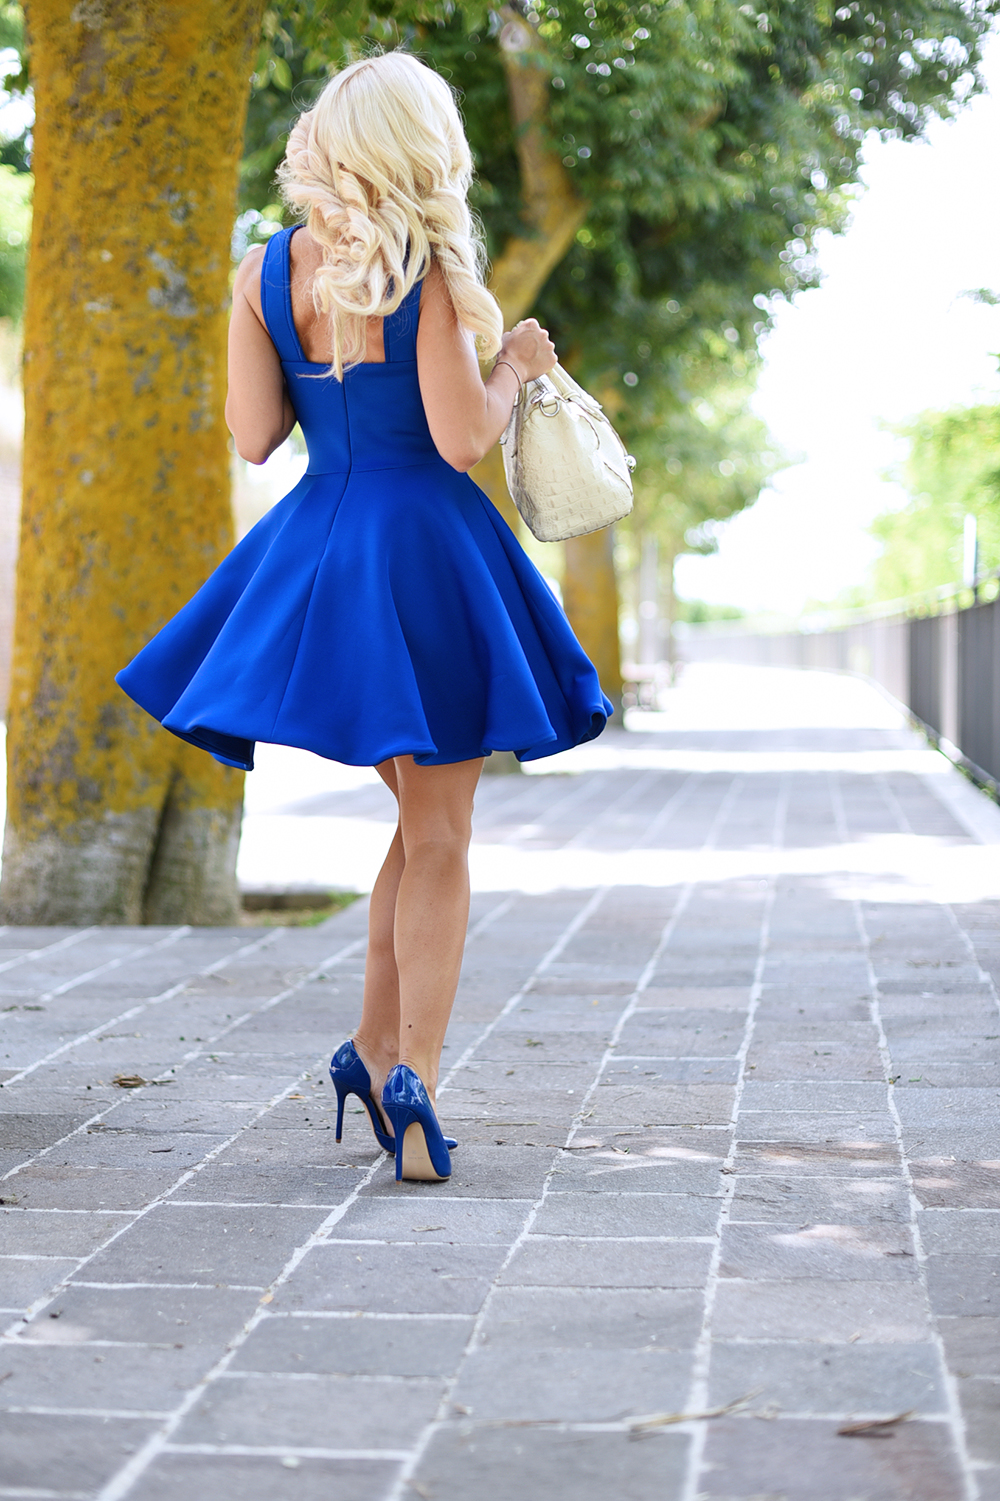 come indossare il blu, vestiti blu, vestiti Sheinside, Sheinside opinioni, Sheinside affidabile, pumps in vernice, TUUM anelli, anelli INFINITUUM prezzi – outfit summer 2015 blog It-Girl by Eleonora Petrella